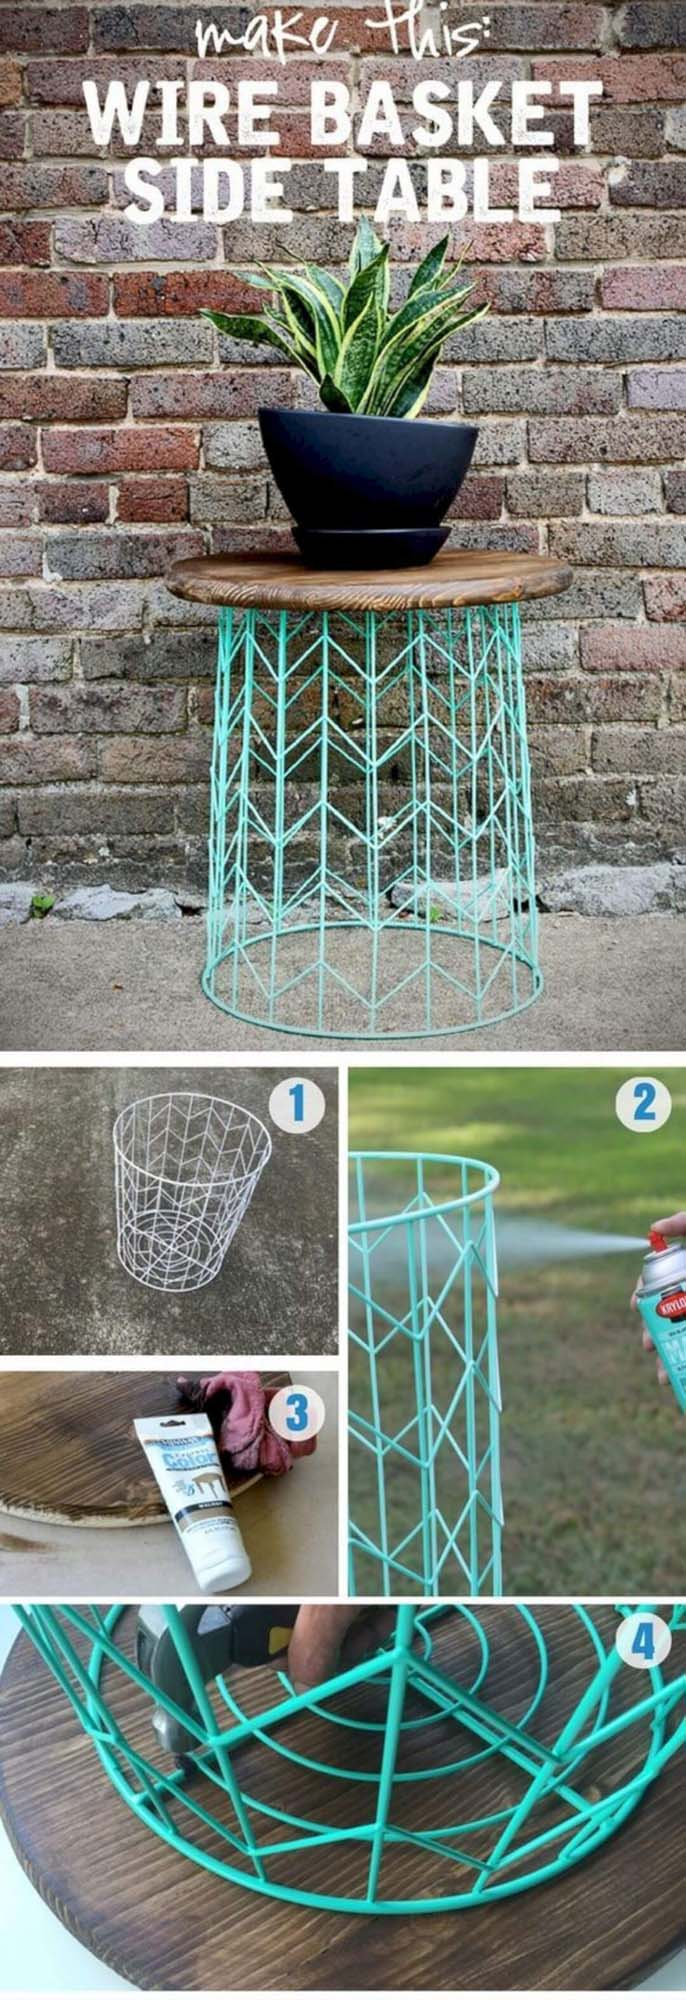 Mod Wire Side Table Project #diy #porch #patio #projects #colorful #decorhomeideas